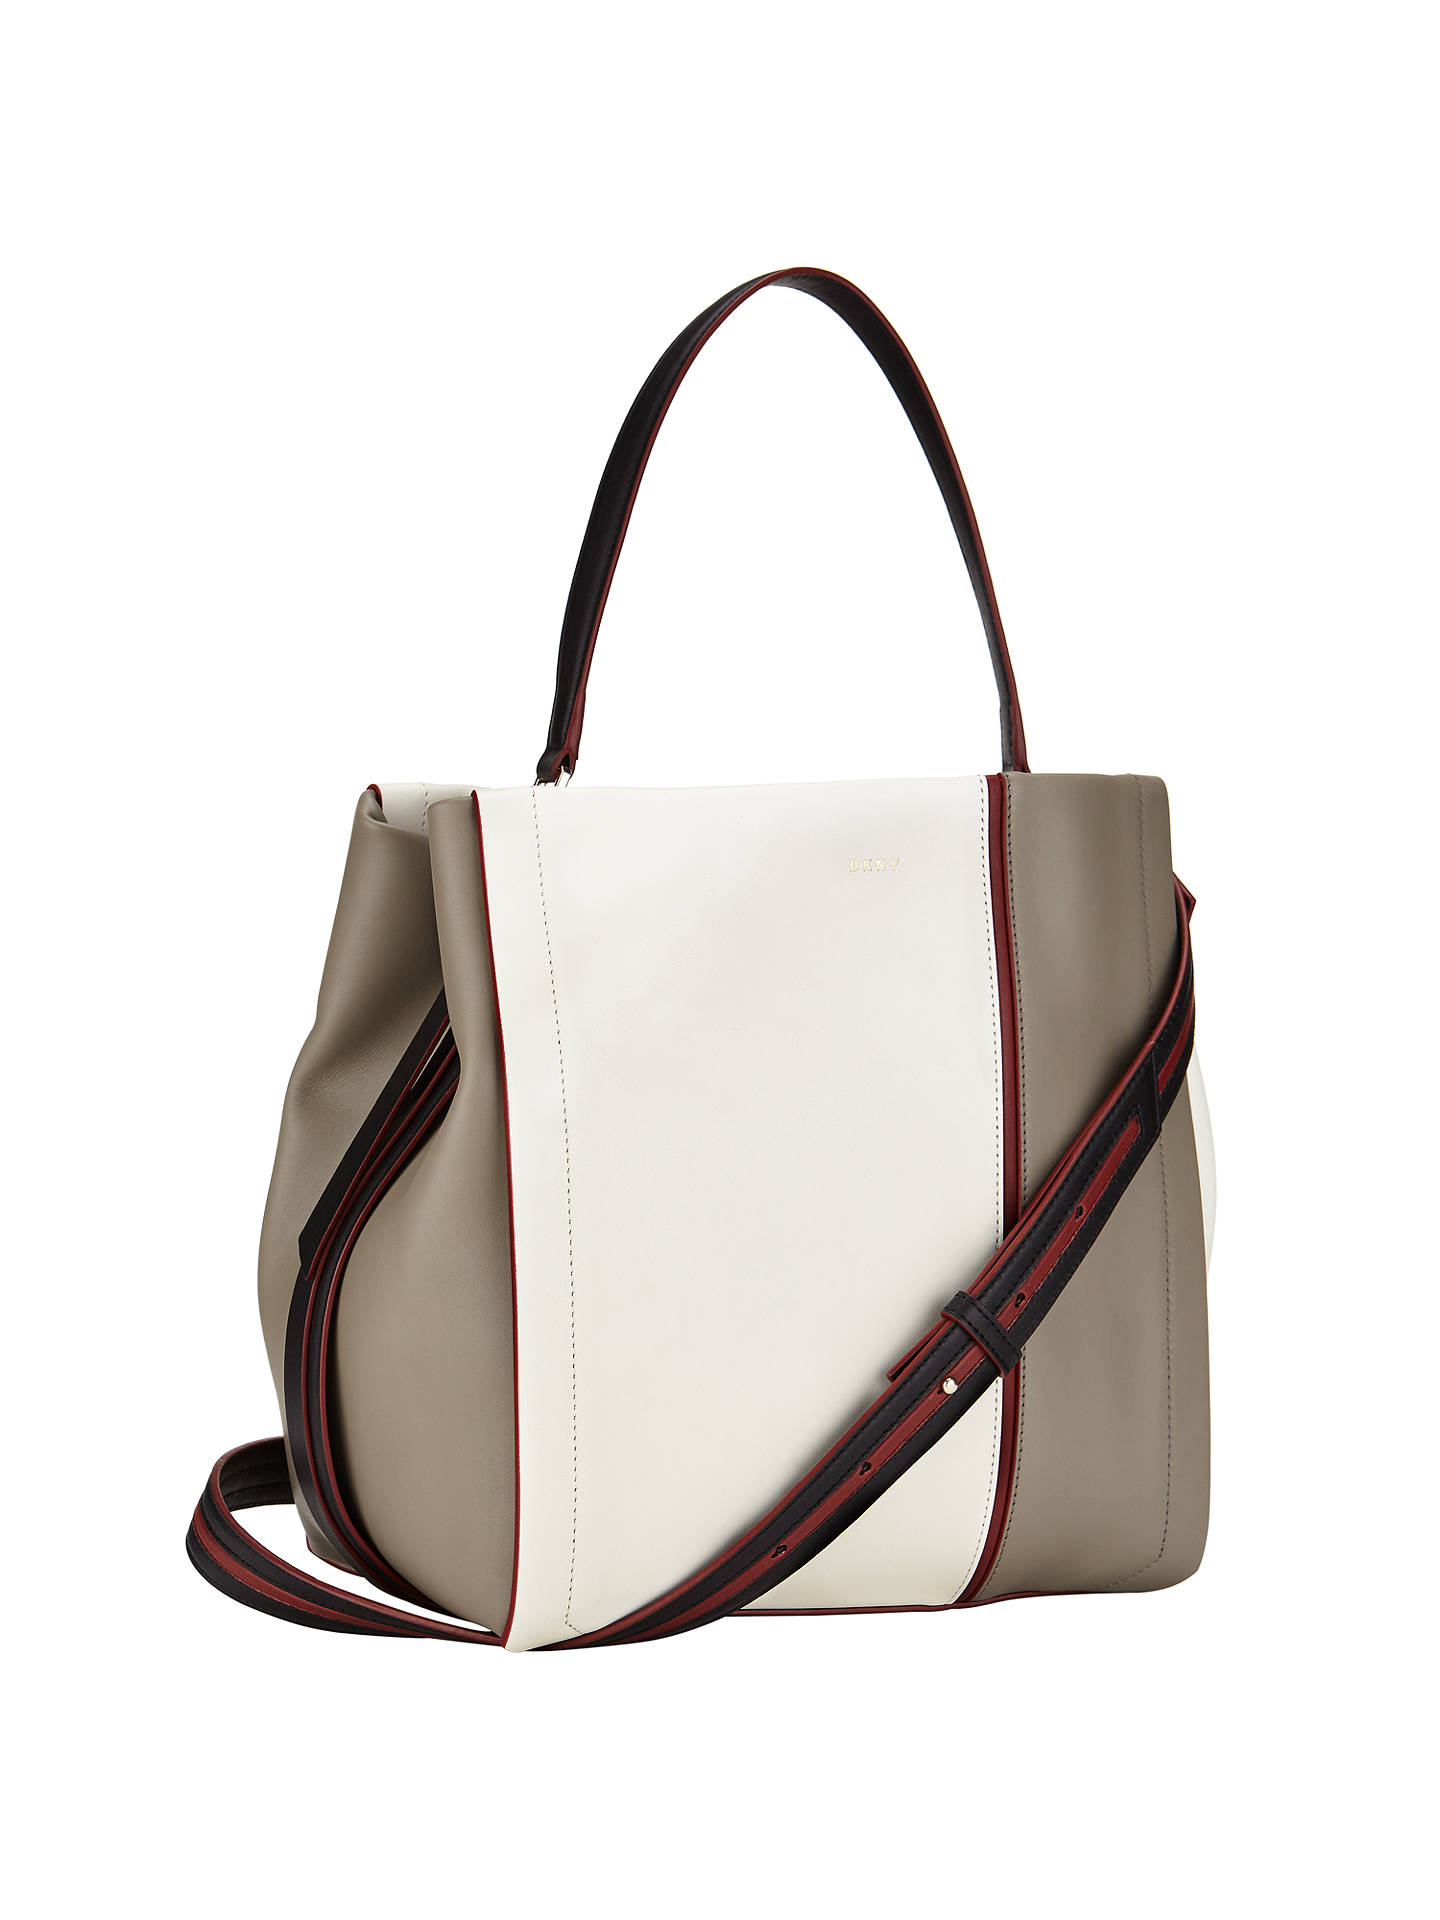 DKNY Greenwich Leather Bucket Bag, Multi at John Lewis